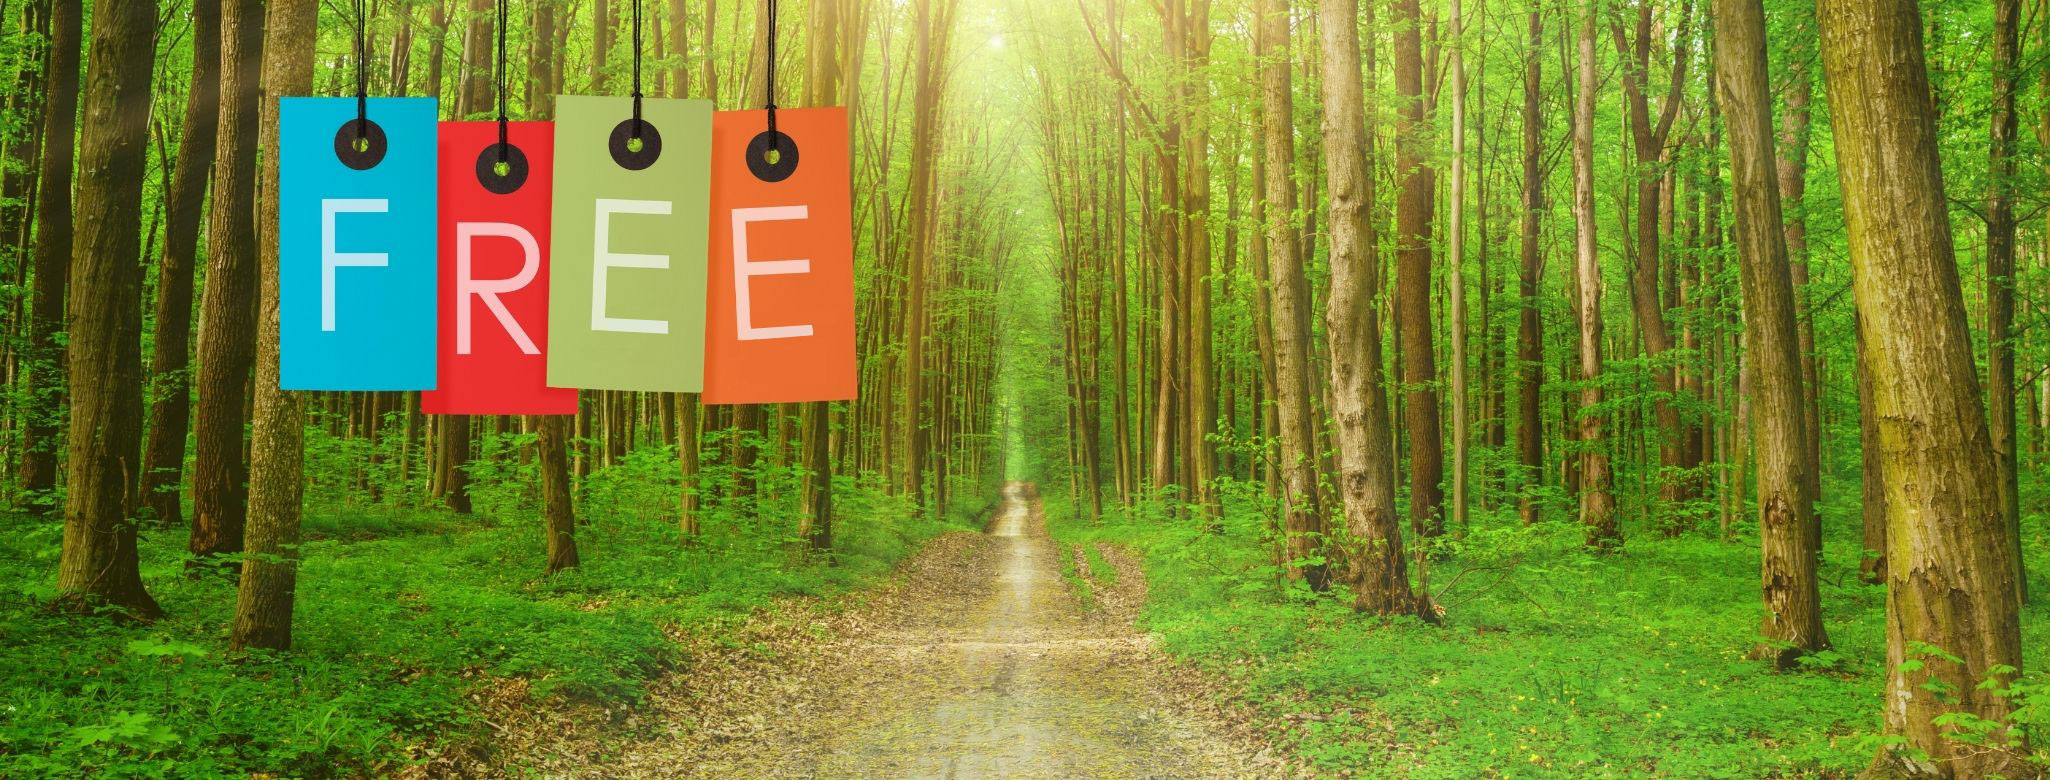 Forest School Activities Free Mini Course